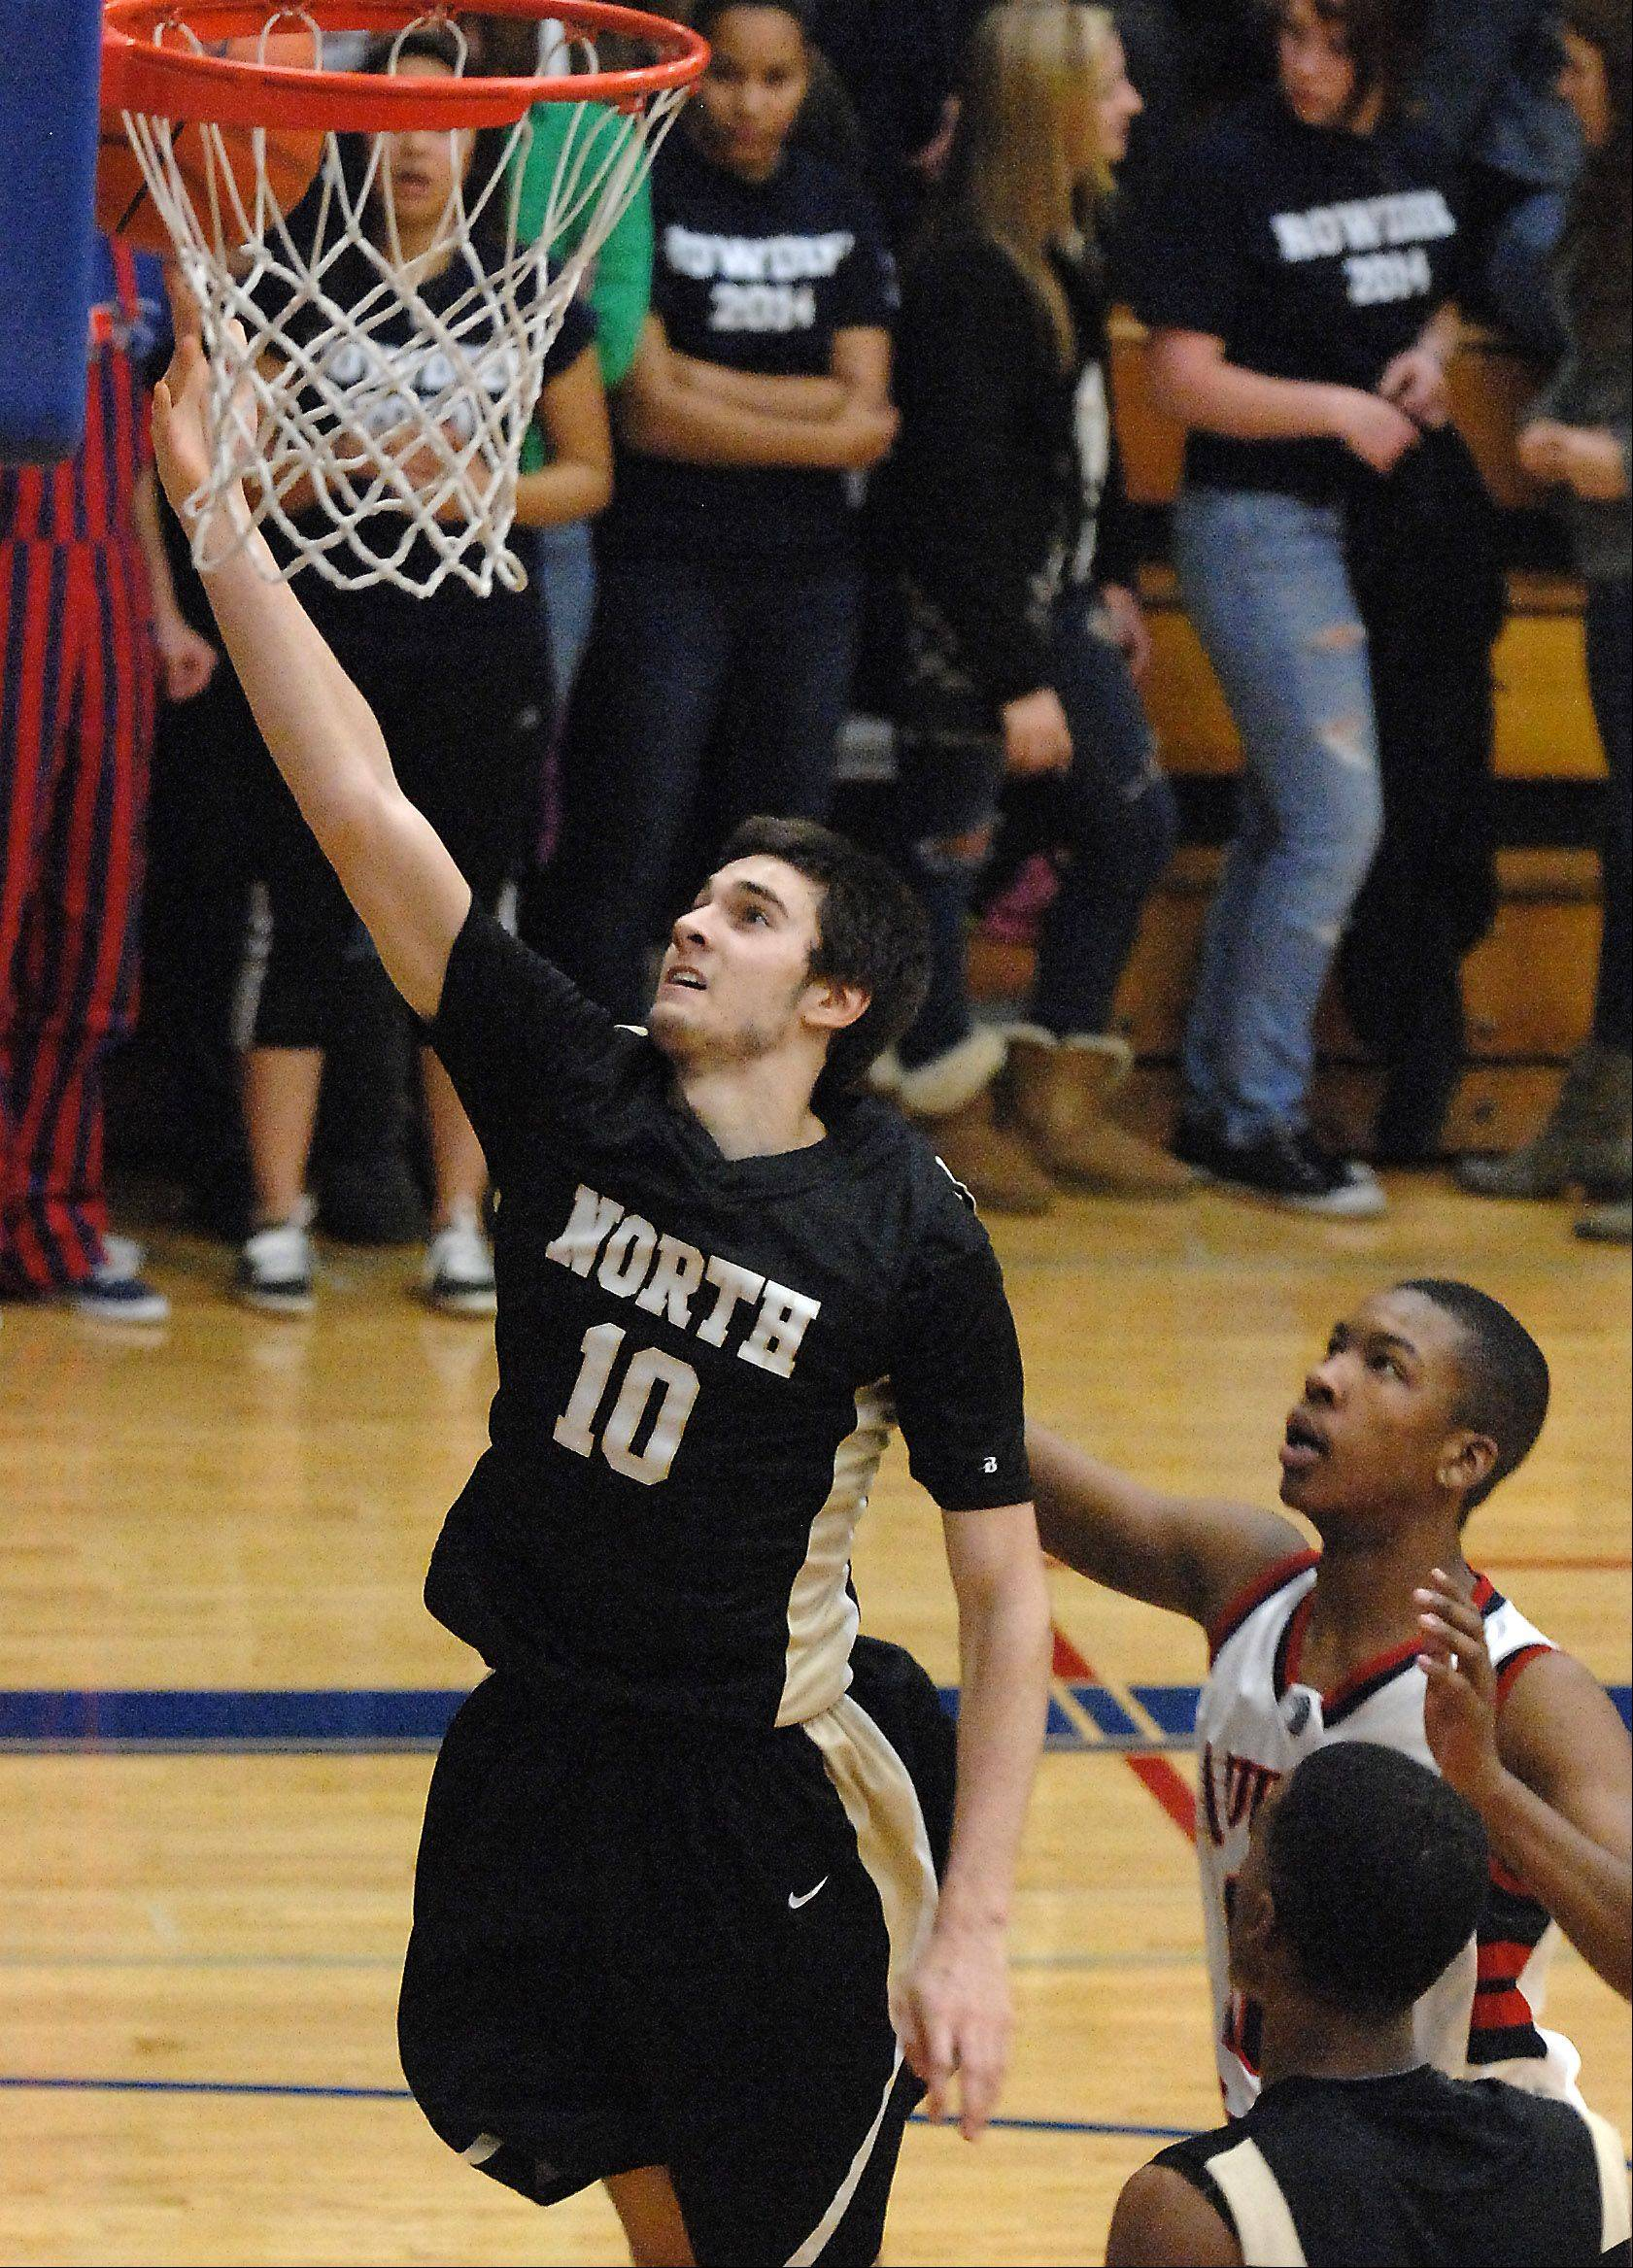 Glenbard North's Pasquale Fiduccia scores an easy layup against West Aurora during Friday's game at West Aurora.